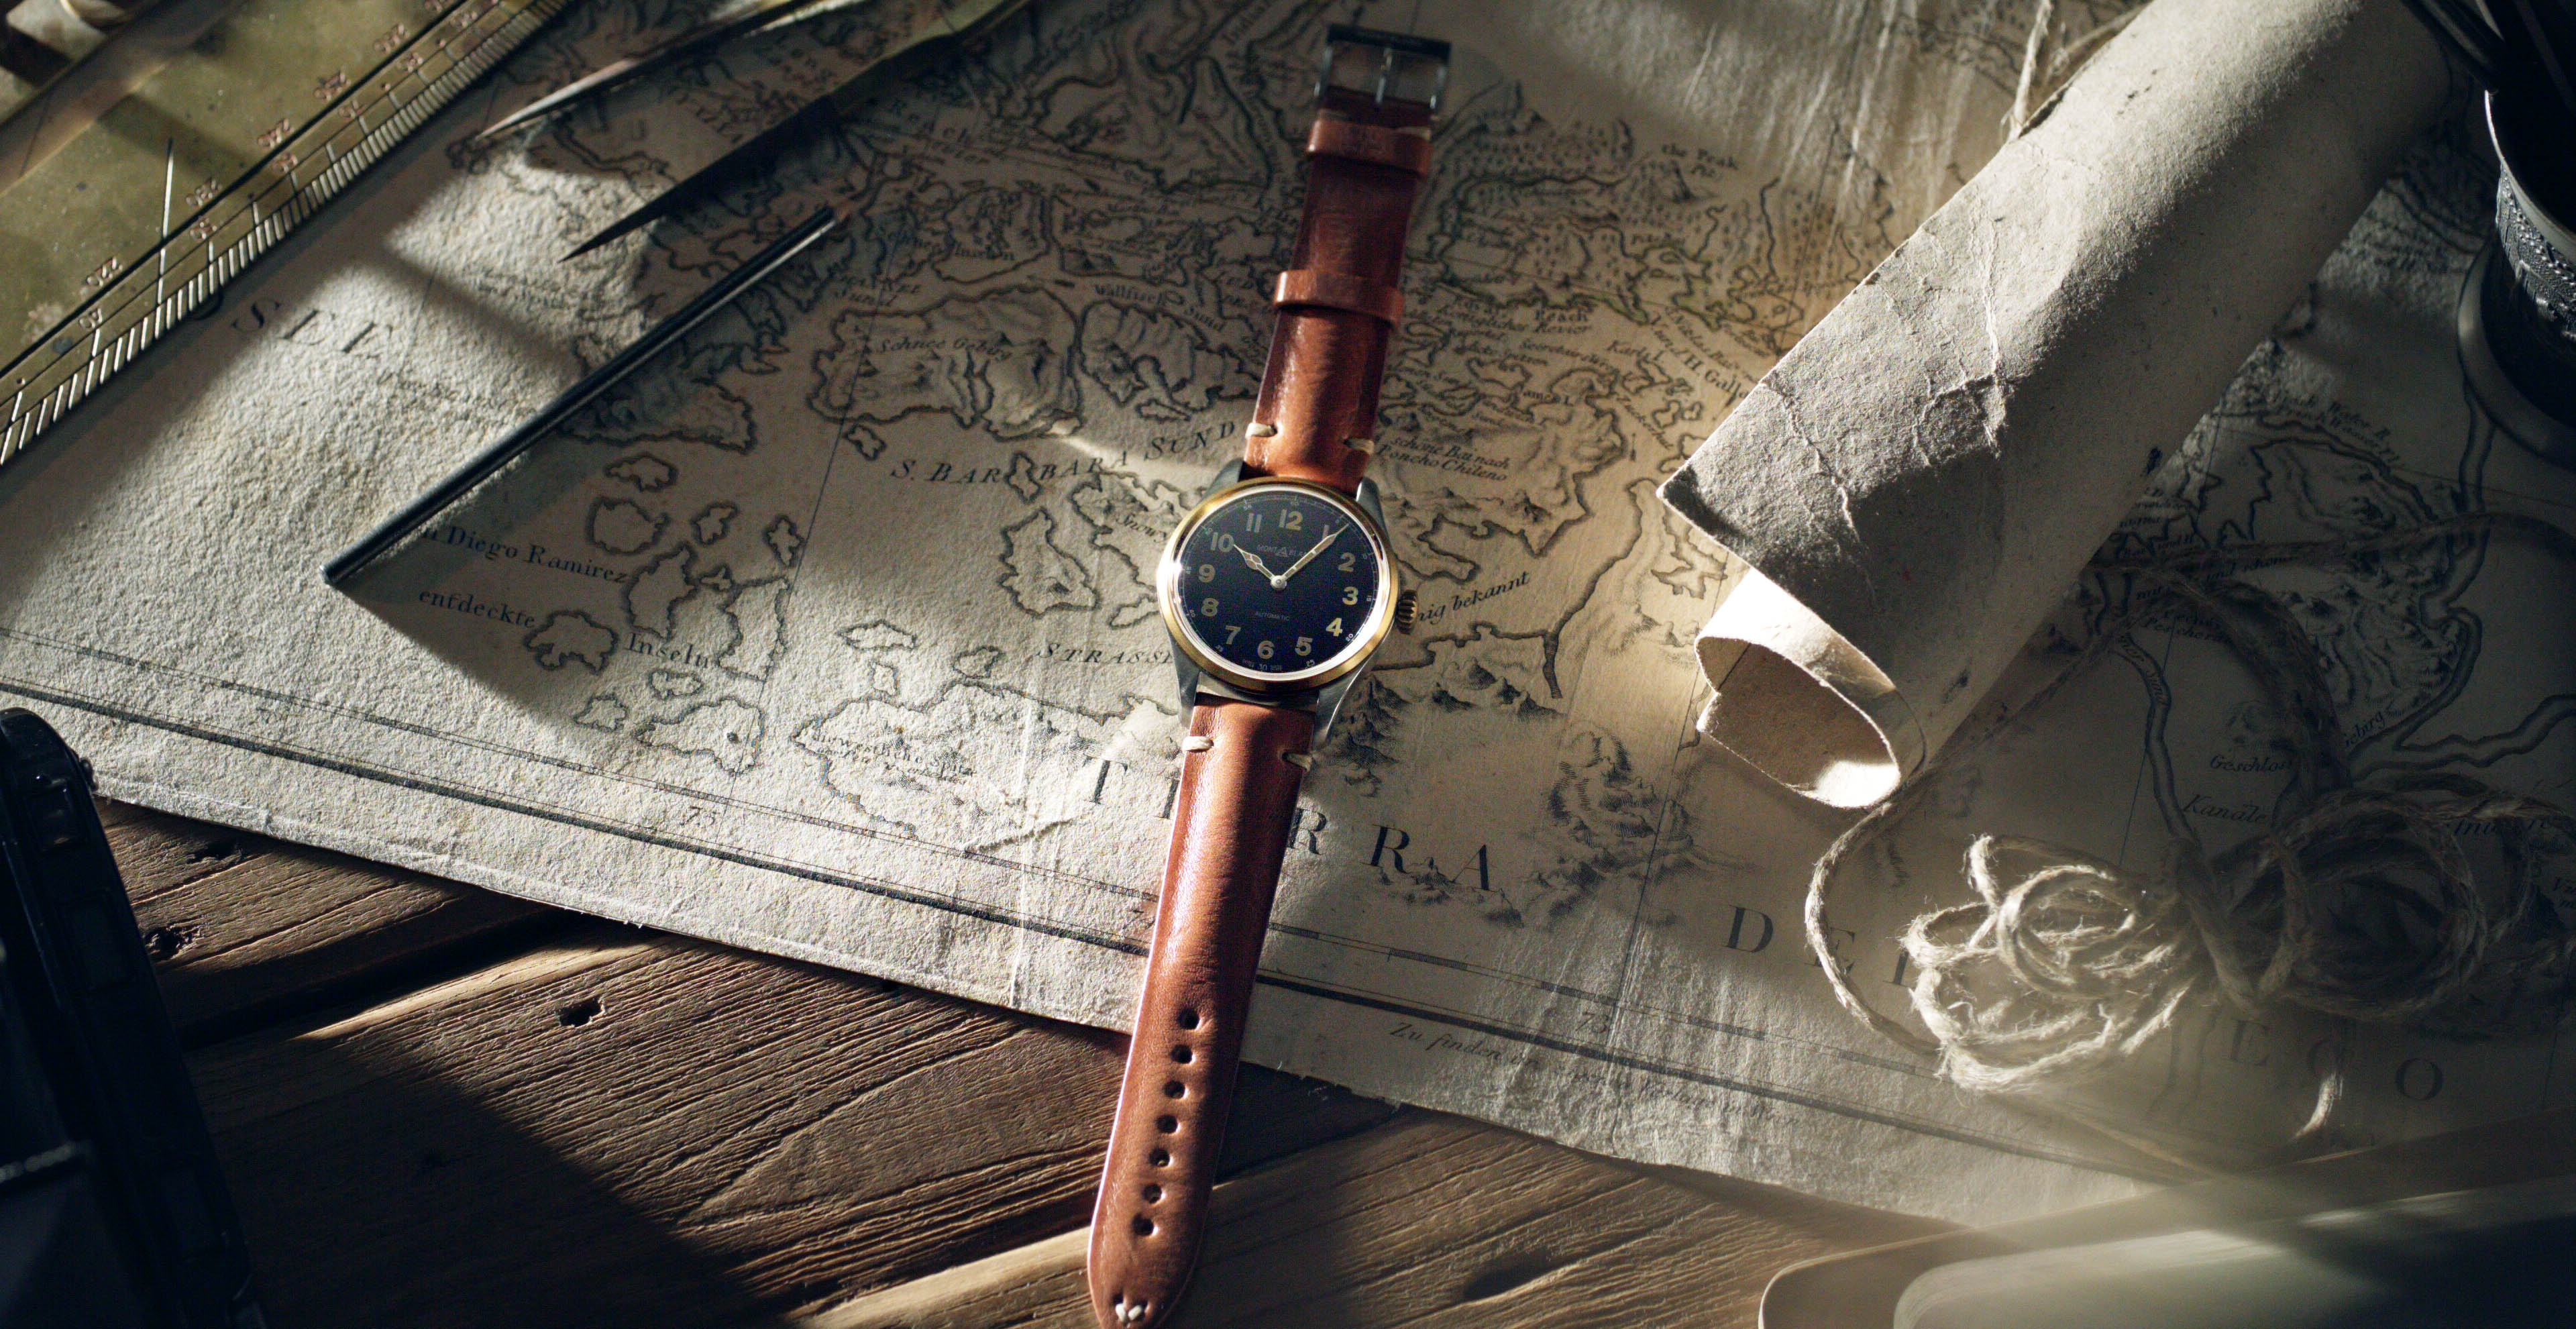 Brown watch on an old map